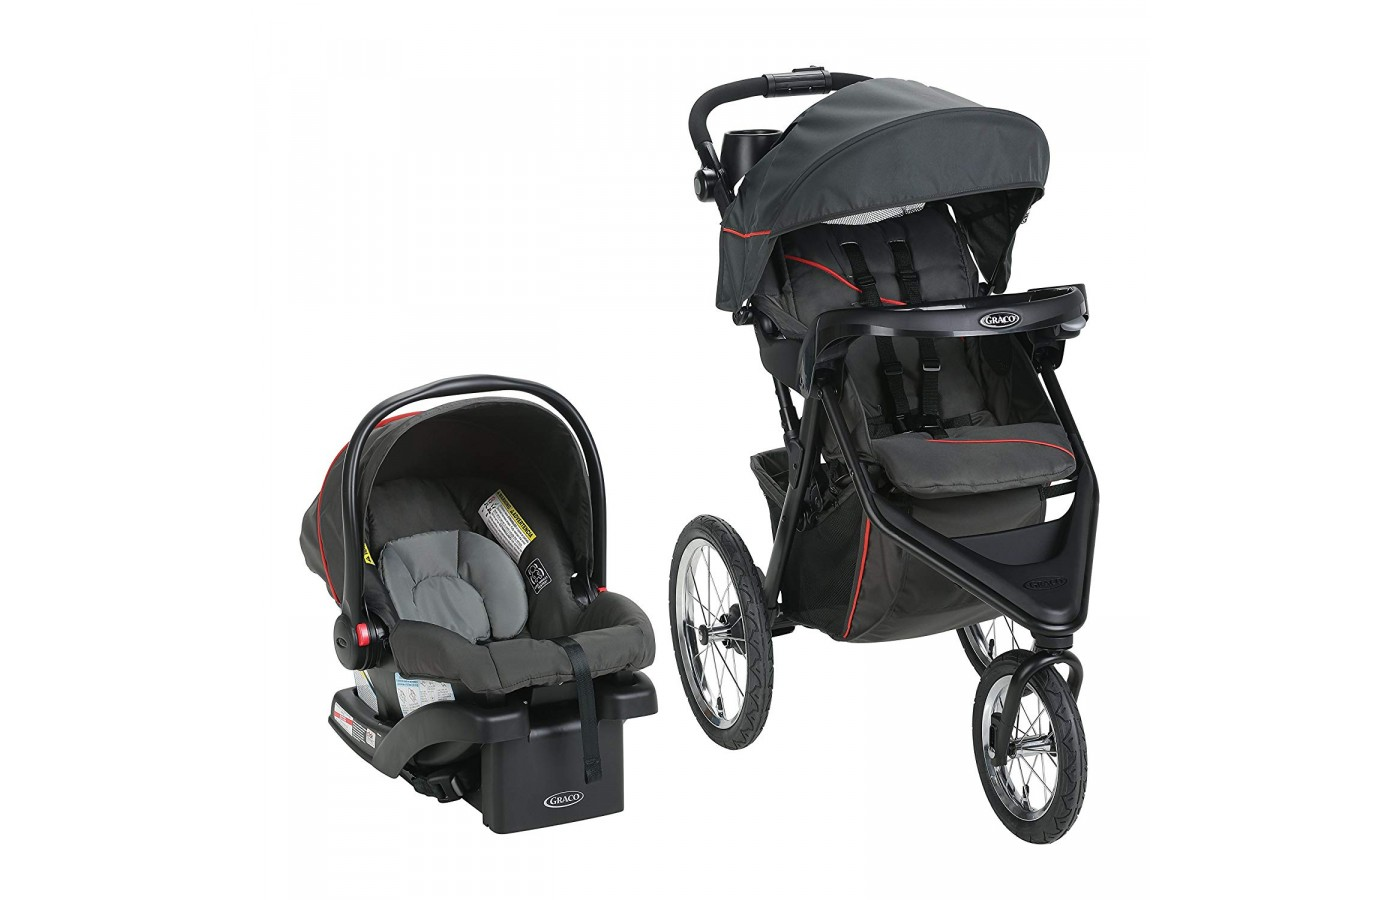 Baby Cradle Graco Graco Trax Jogger Review